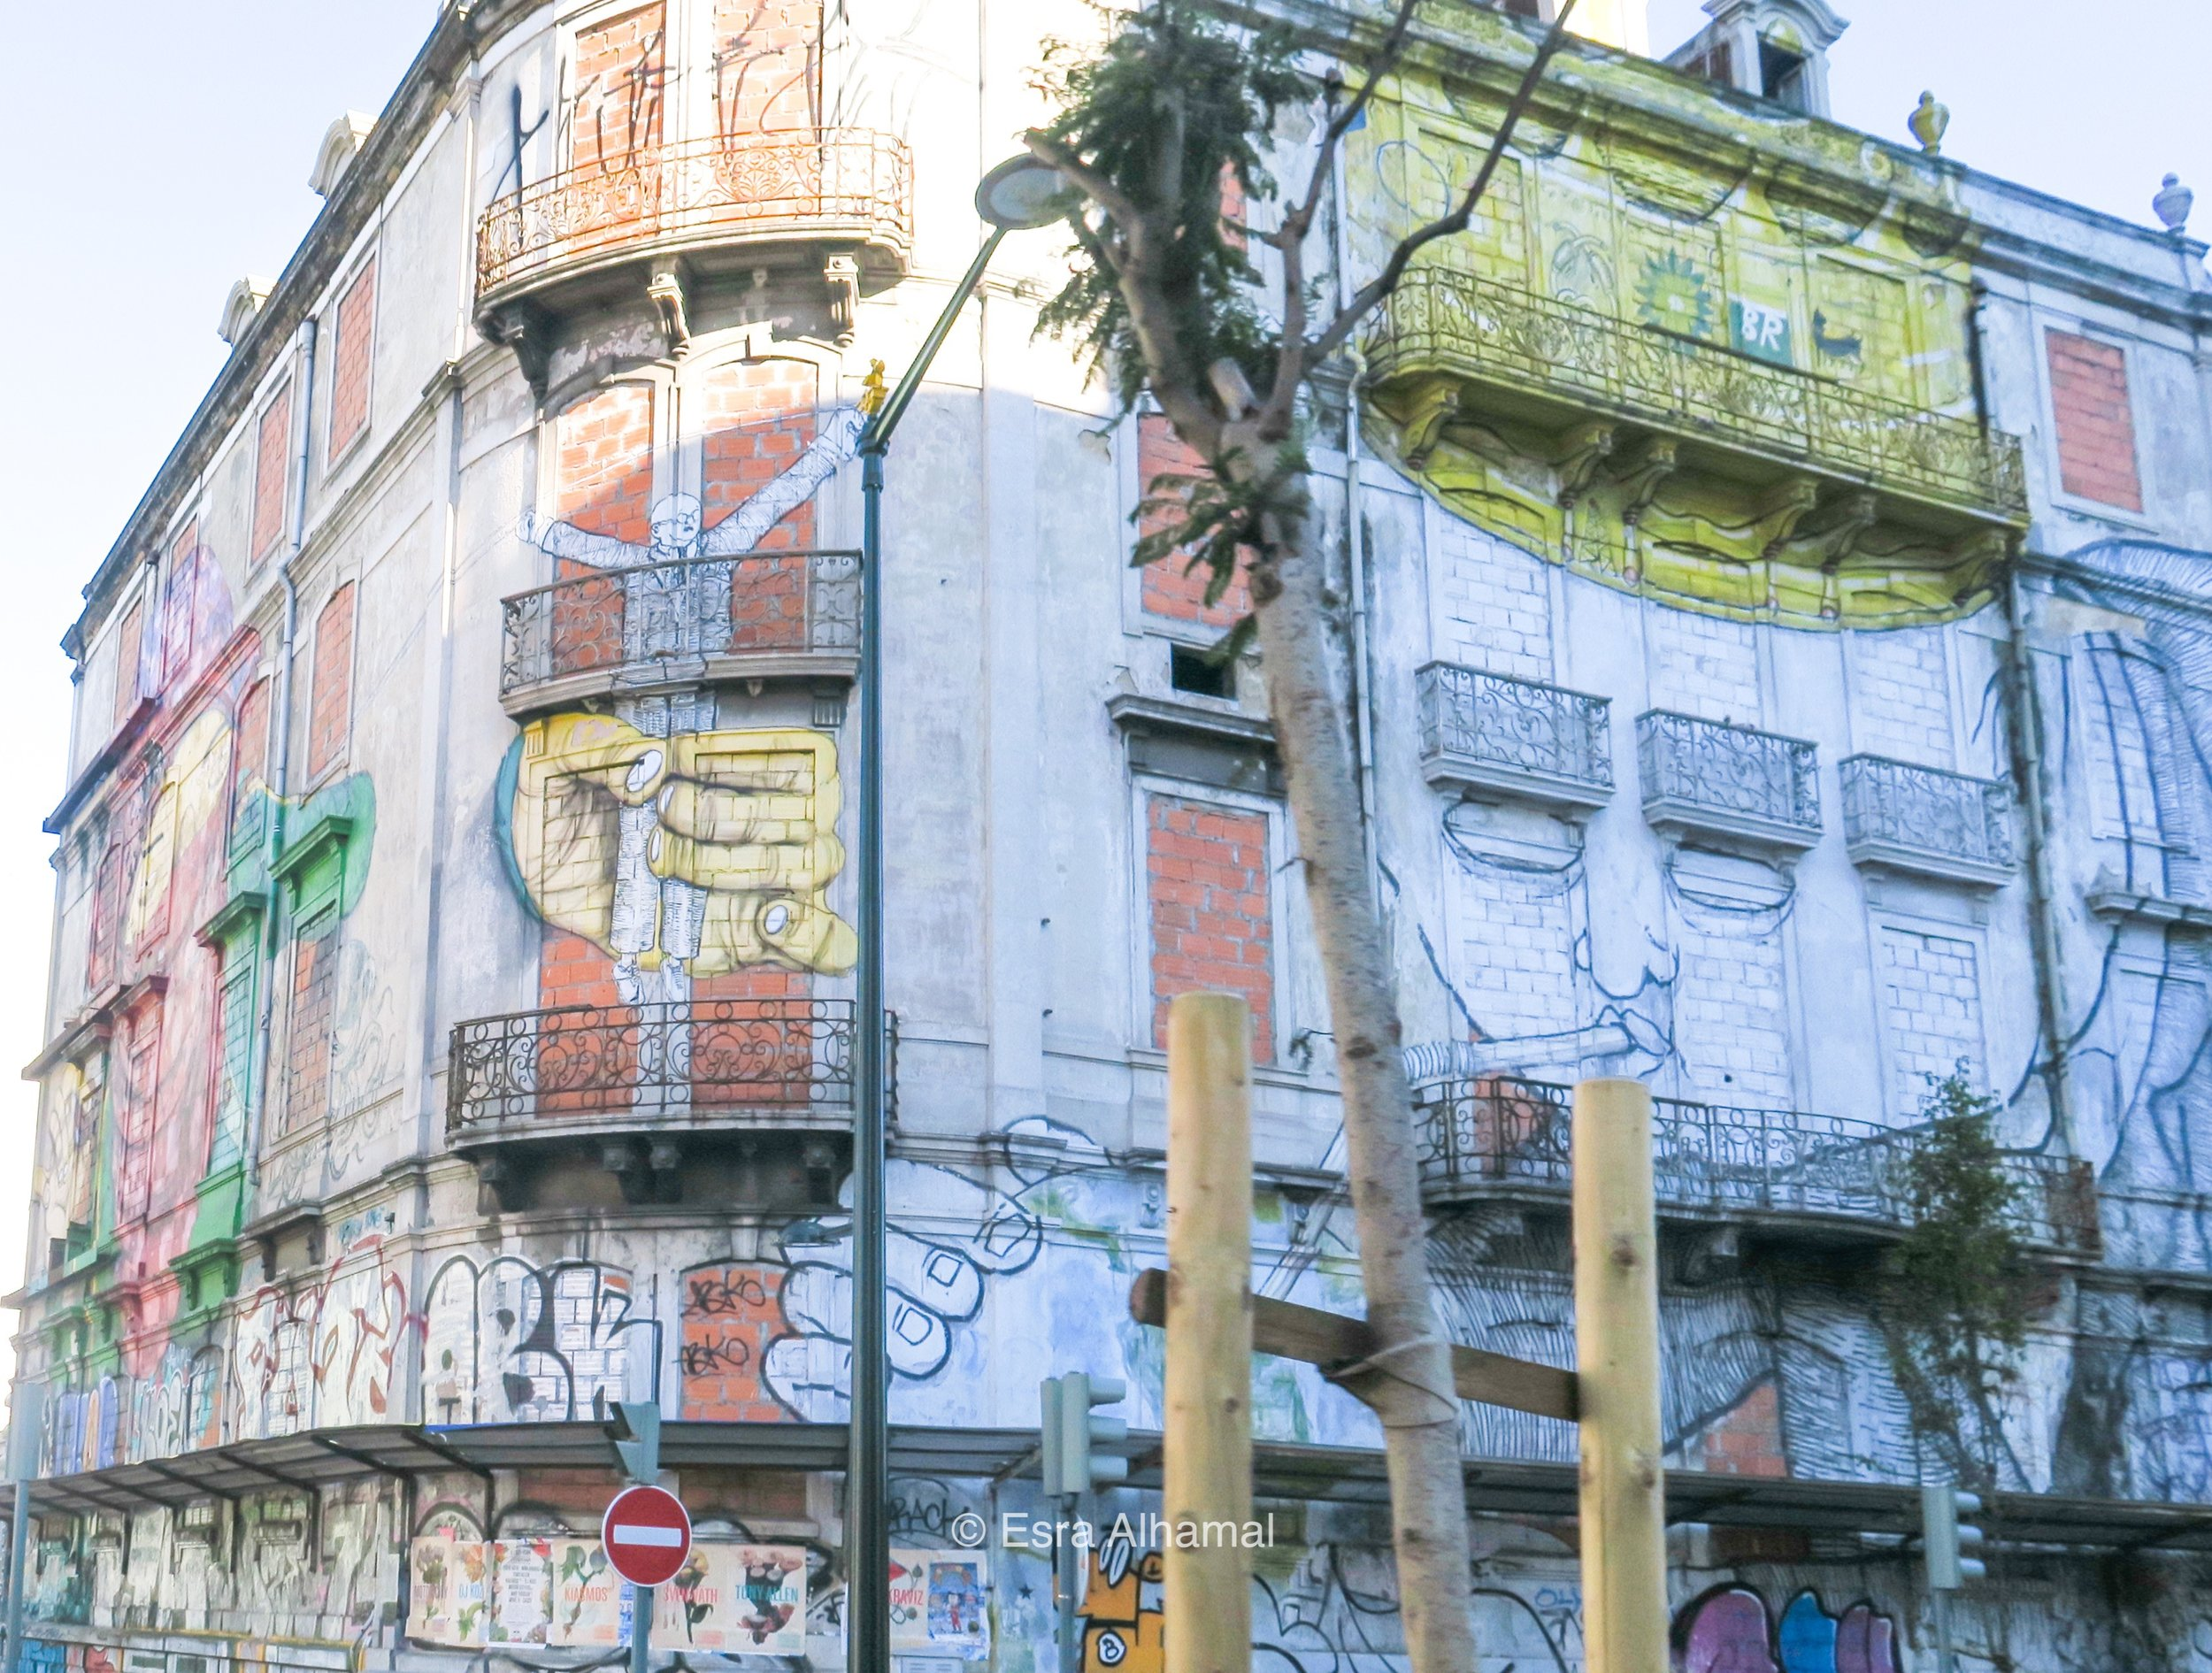 Big Scale Street Art in Lisbon